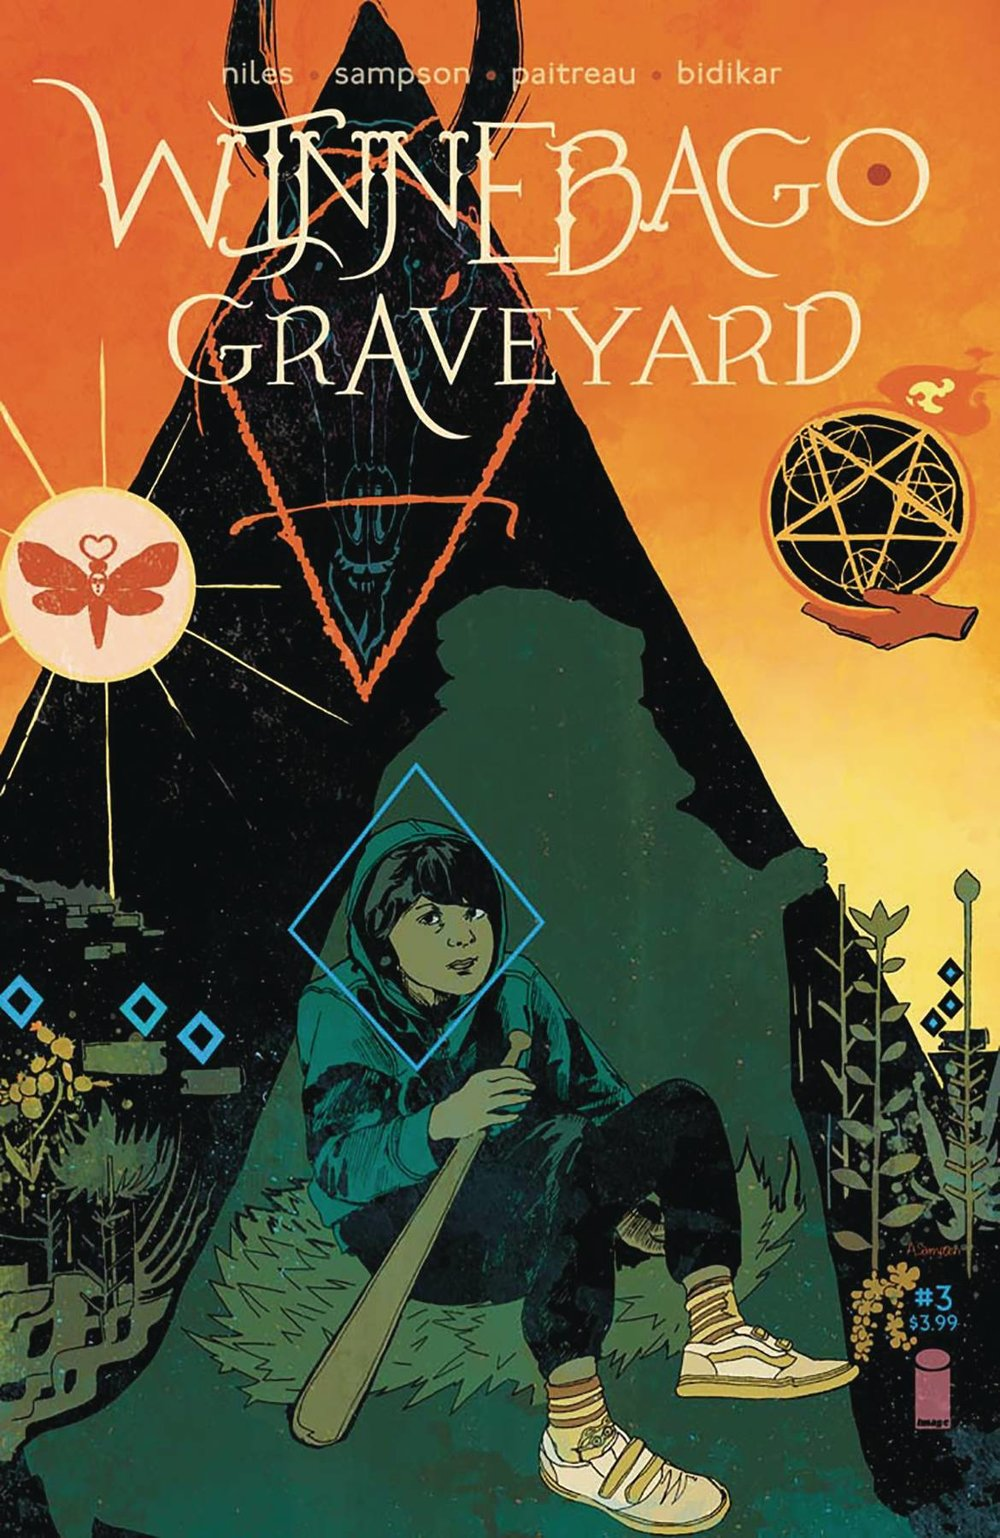 WINNEBAGO GRAVEYARD 3 of 4 CVR A SAMPSON.jpg